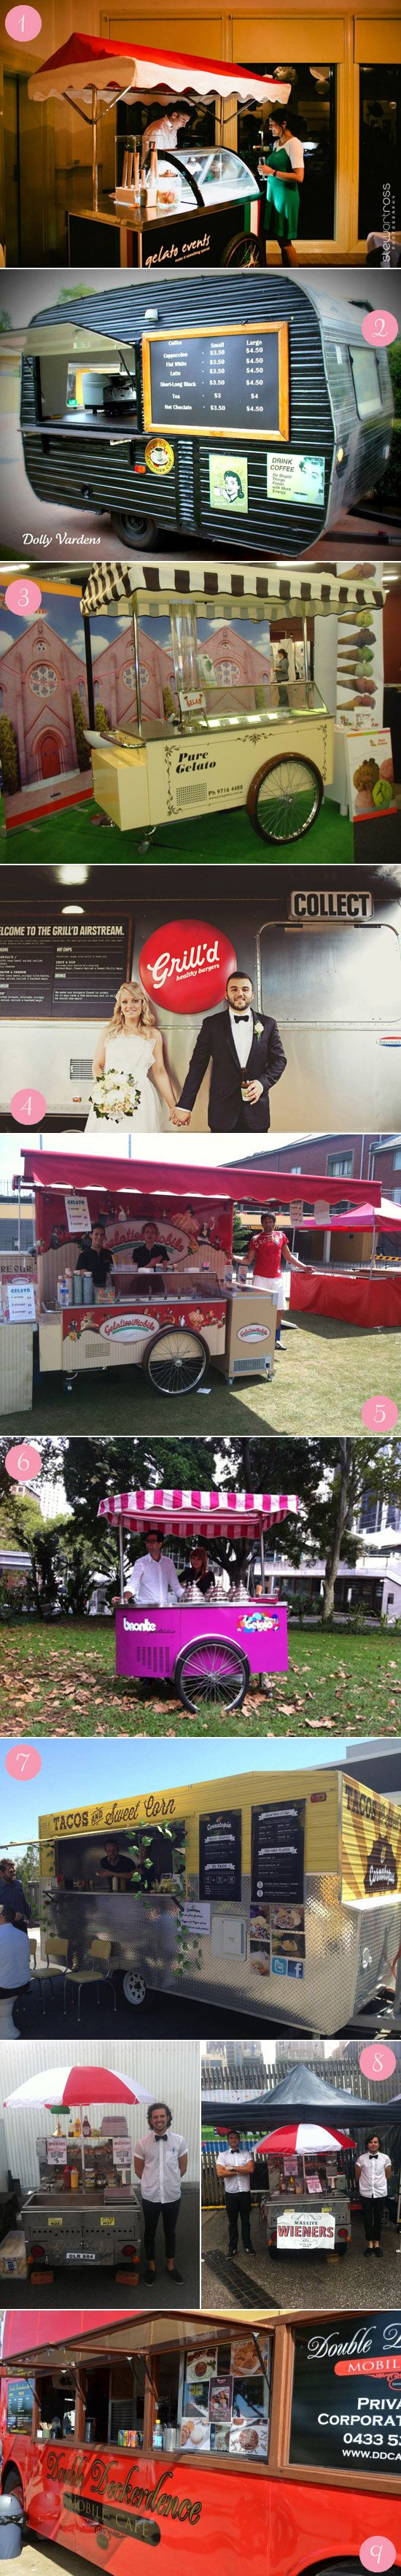 Carting it Around – Delicious Wedding Food Carts & Trucks http://www.tow-trucks-for-sale.com http://food-trucks-for-sale.com